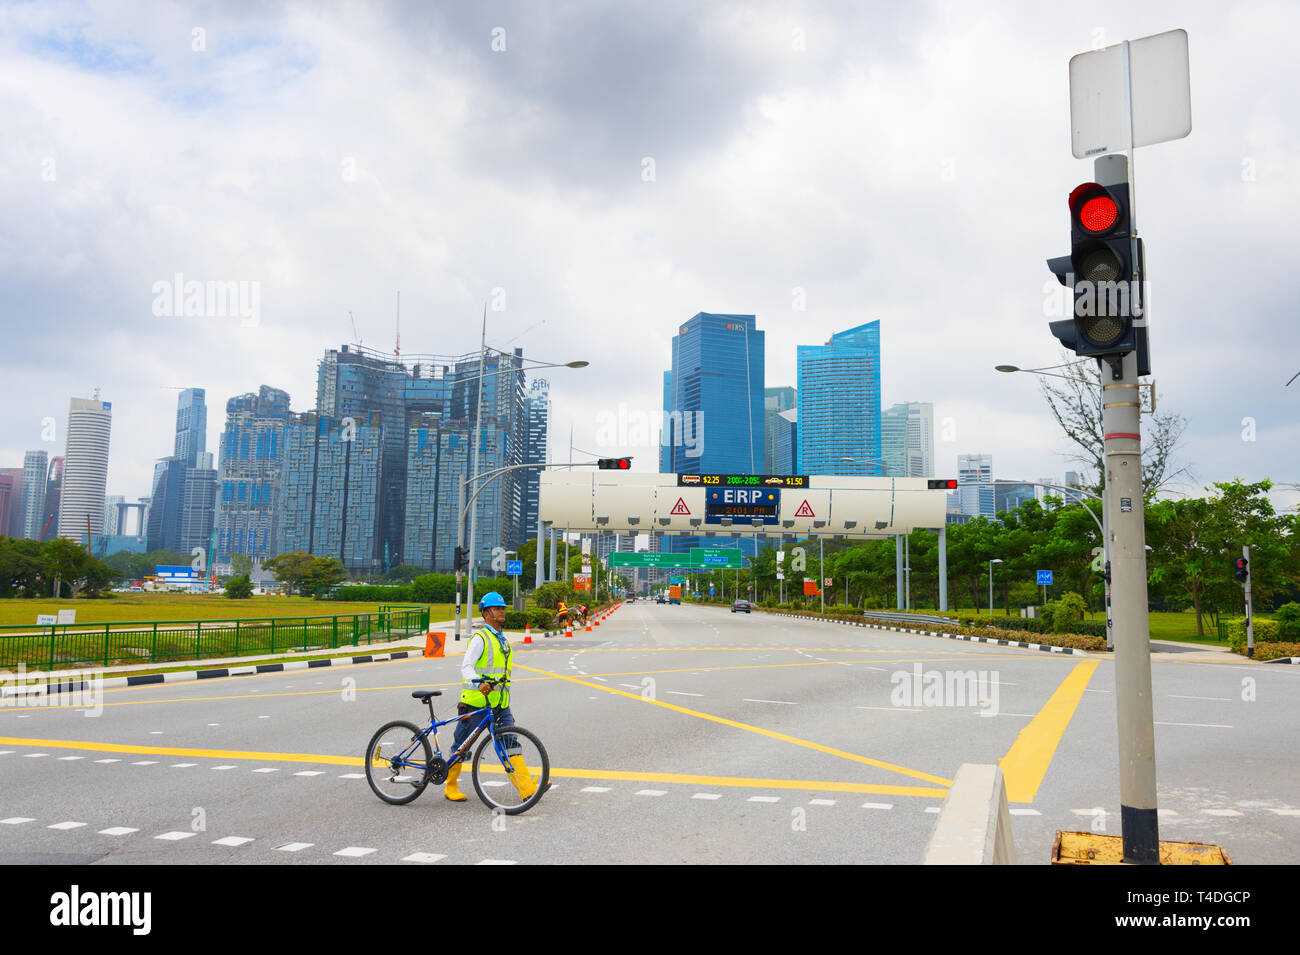 SINGAPORE - FEBRUARY 16, 2017: Construction site worker in helmet and vest crossing road with bicycle, Singapore downtown skyline in background - Stock Image